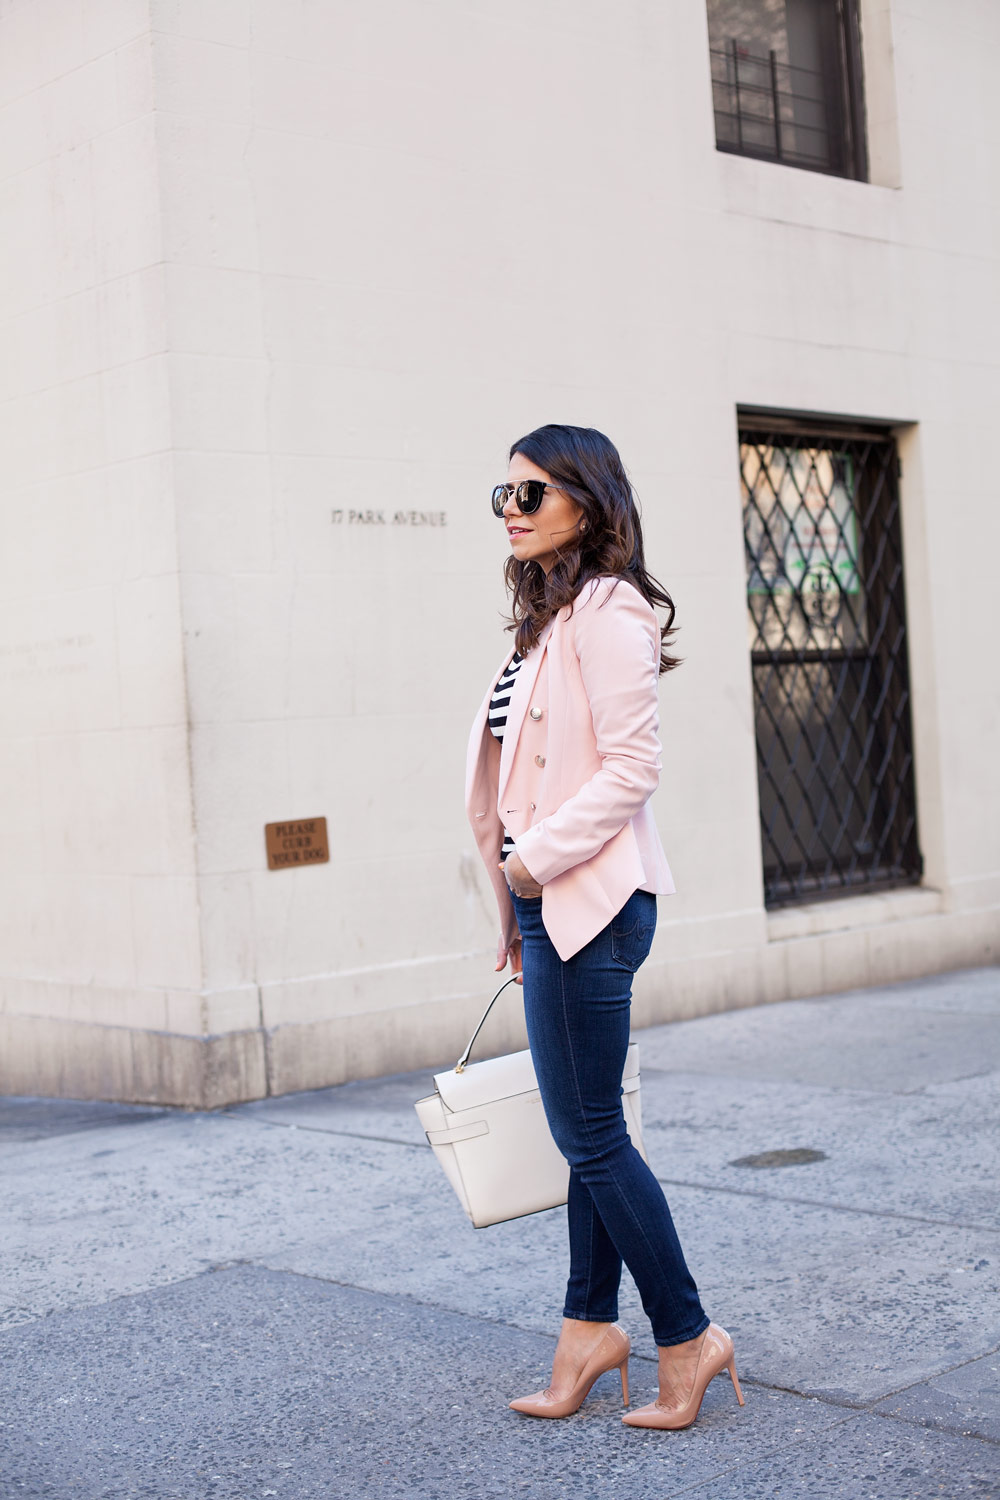 WHBM Pink Blazer New York City Casual Style Denim christian louboutin Nude Pigalle Heels Henri Benel White Bag Prada Sunglasses Corporate Catwalk